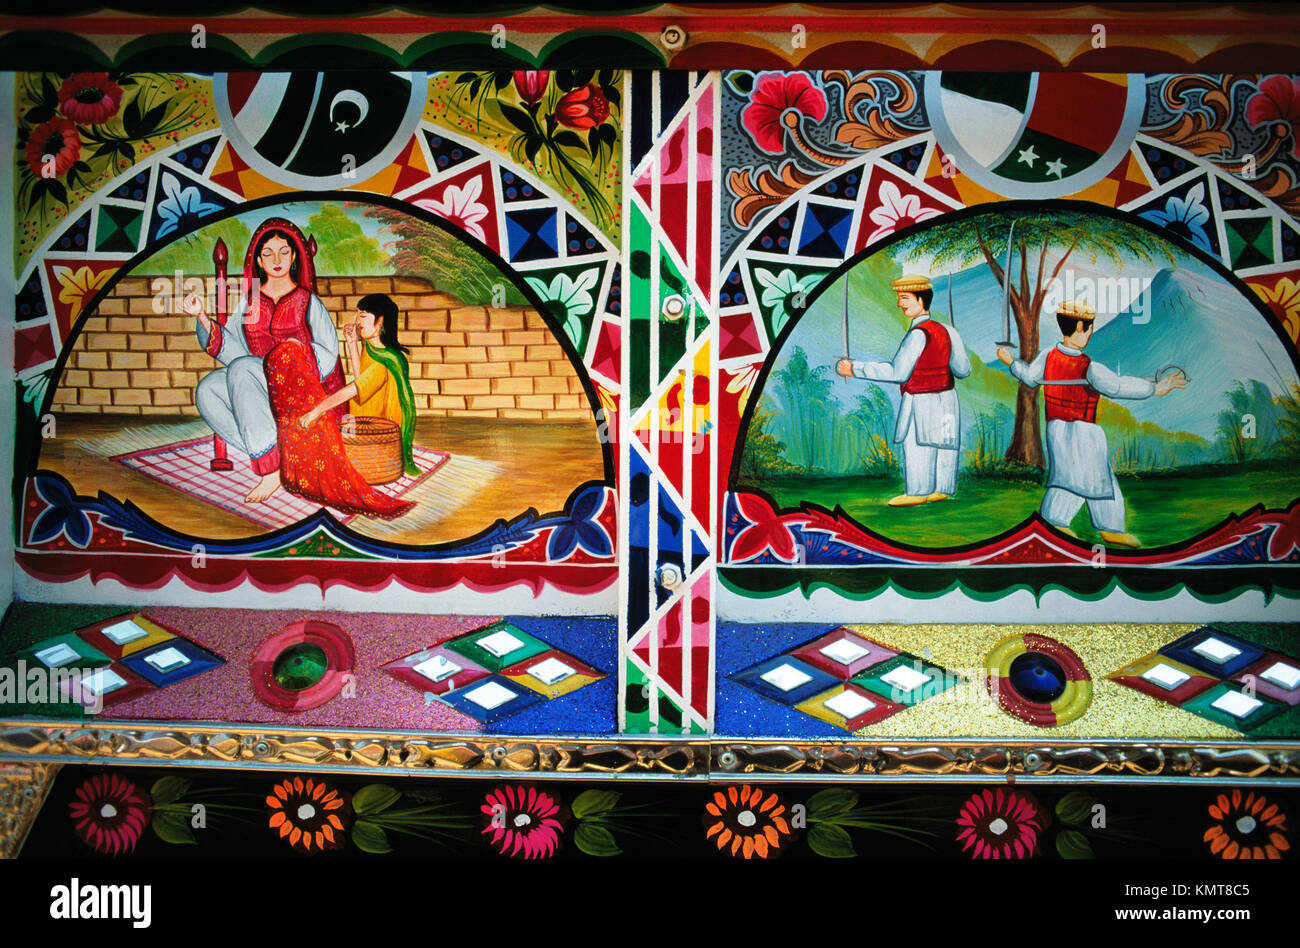 Detail of colourful bus from Pakistan about folk life. Smithsonian Institution. Washington D.C. USA - Stock Image